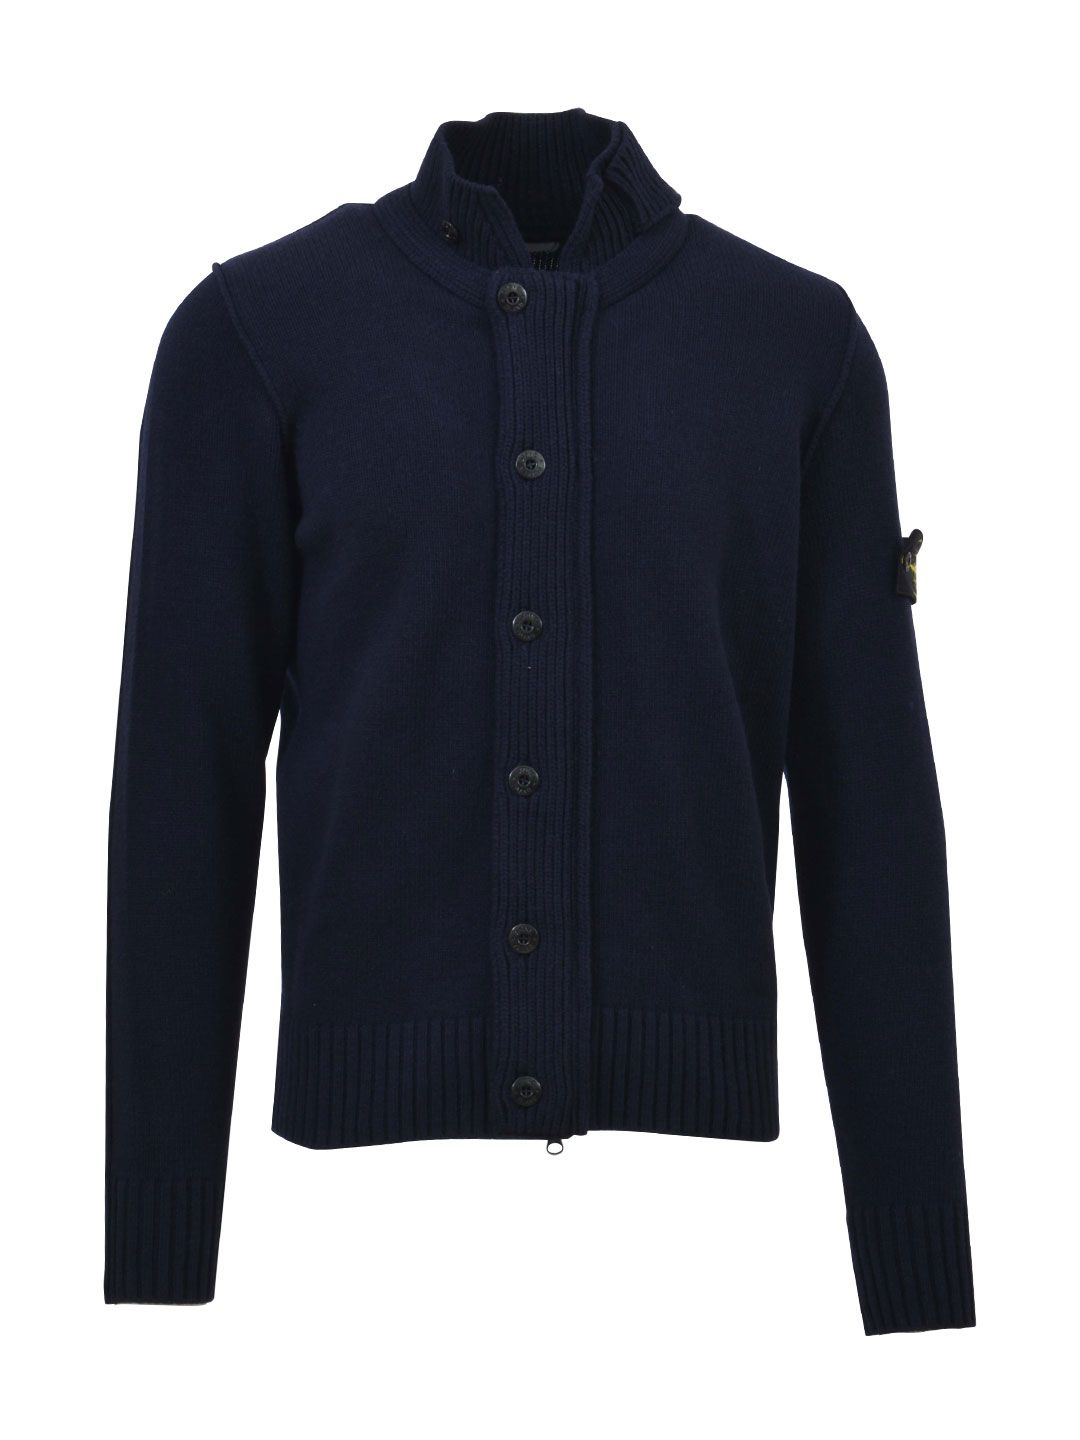 stone island stone island blue cardigan blue men 39 s sweaters italist. Black Bedroom Furniture Sets. Home Design Ideas